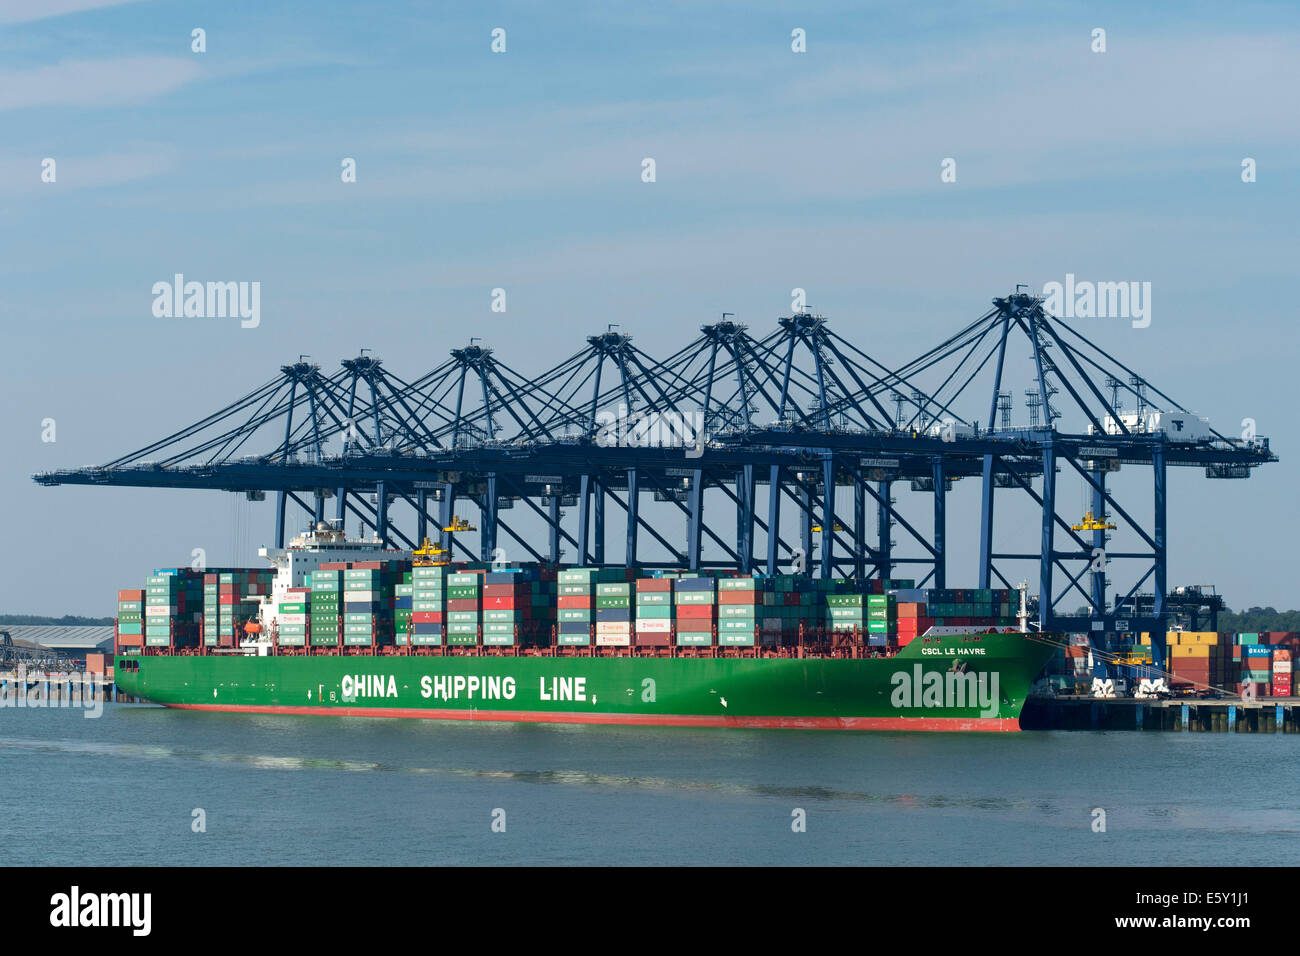 A China Shipping Line ship at the Port off Felixstowe near Harwich, Engliand - Stock Image